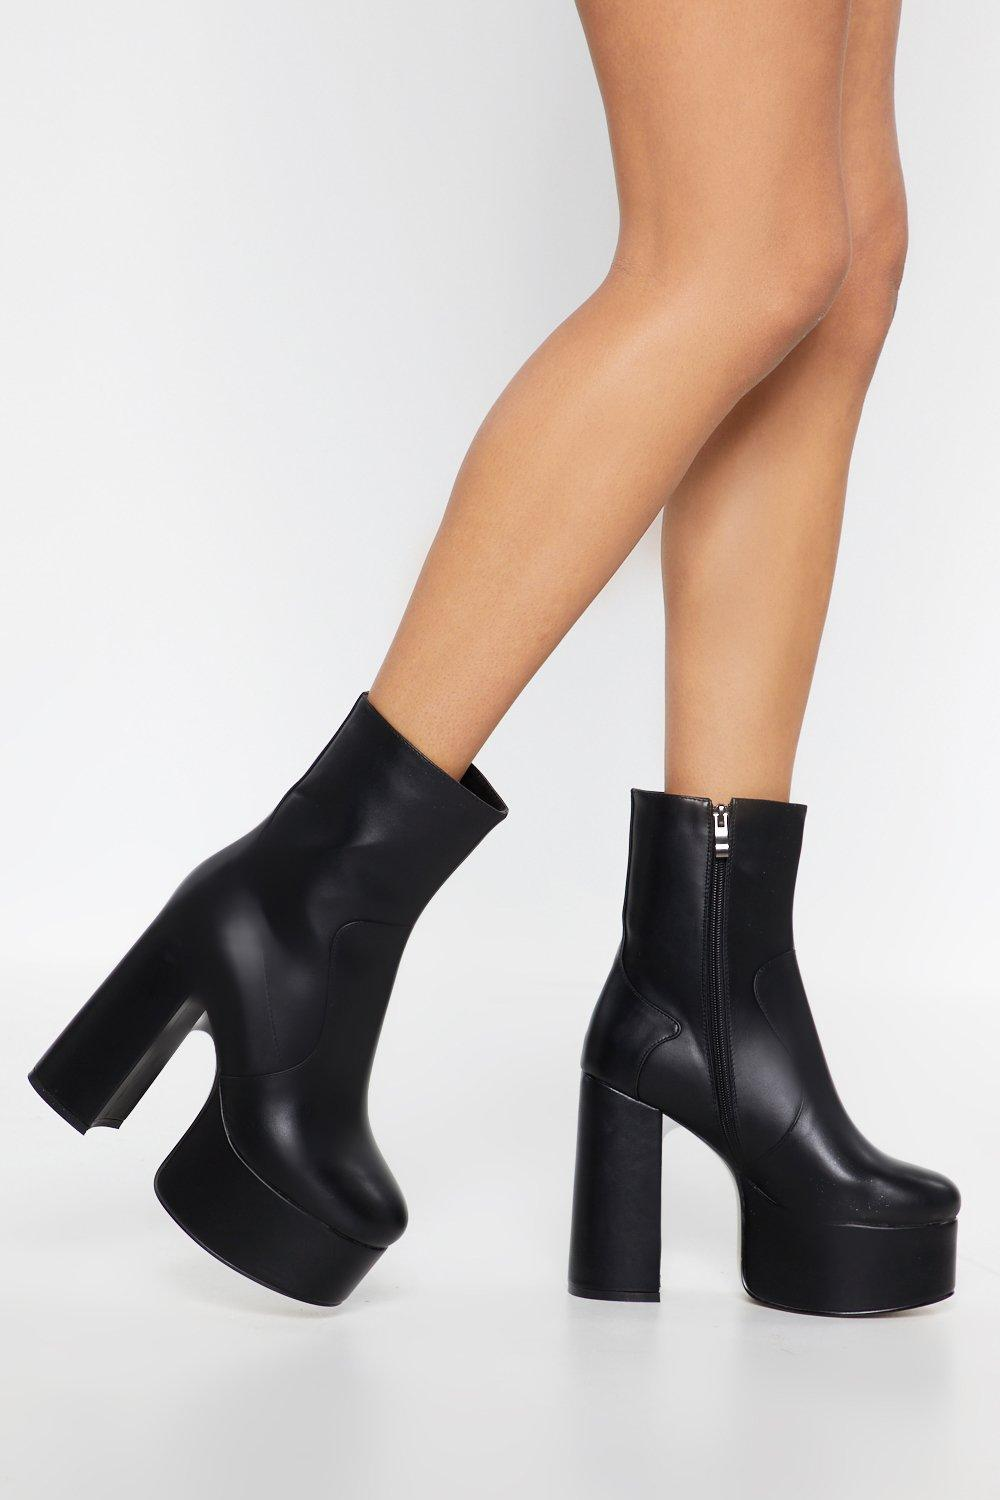 99e7dcf8d33ad Platform Your Opinion Sock Boots | Shop Clothes at Nasty Gal!